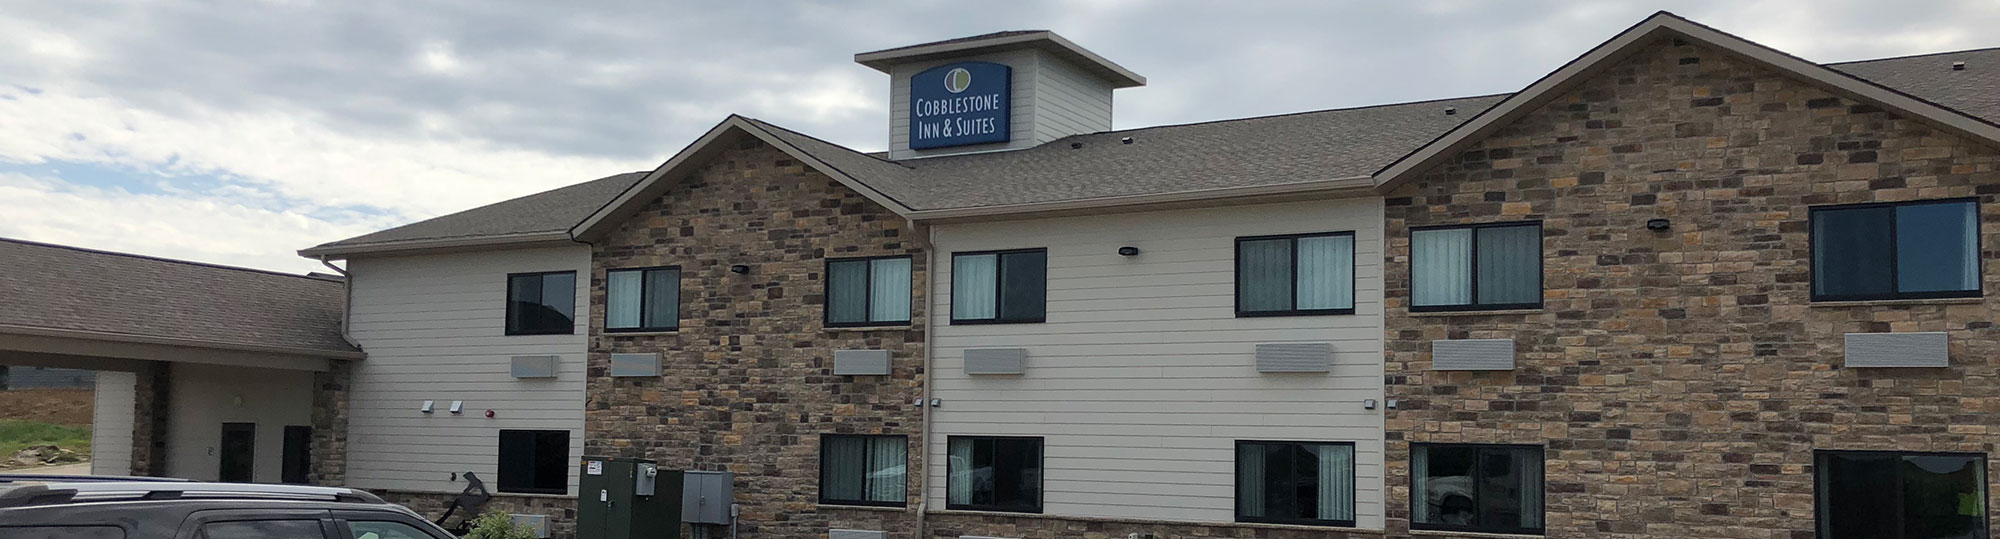 Cobblestone Inn and Suites Denison